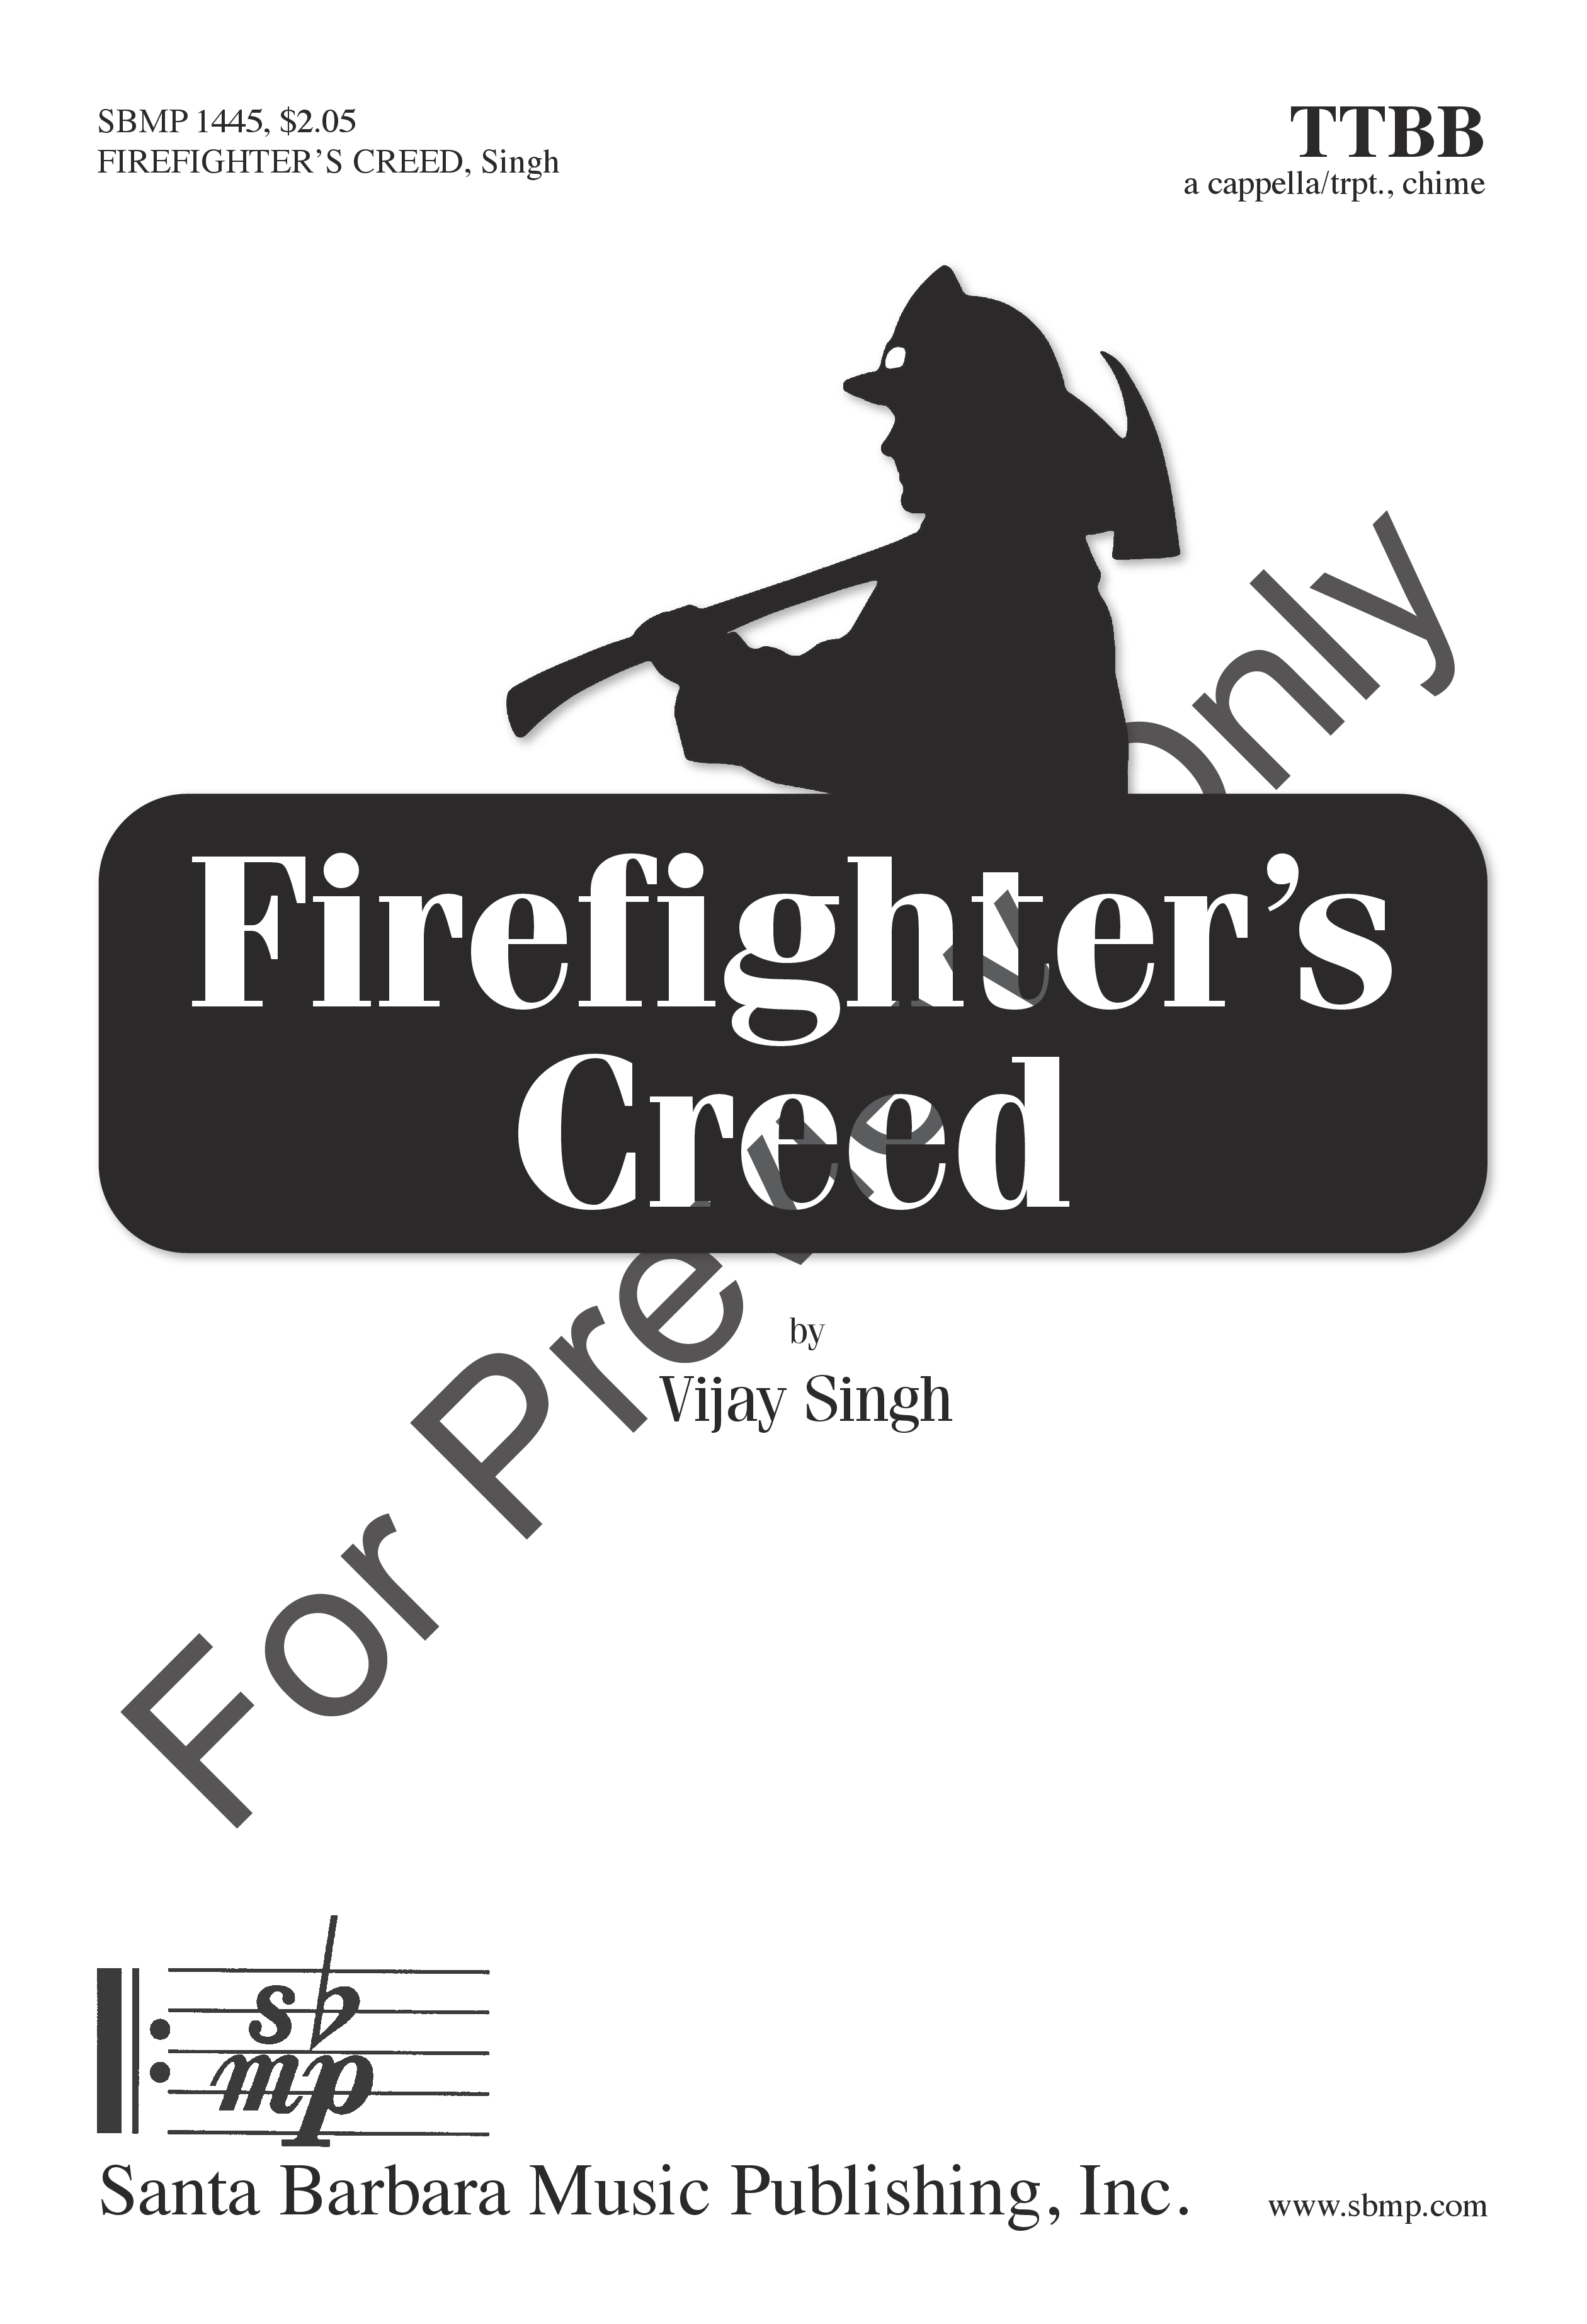 Creed band logo png. Firefighter s ttbb by